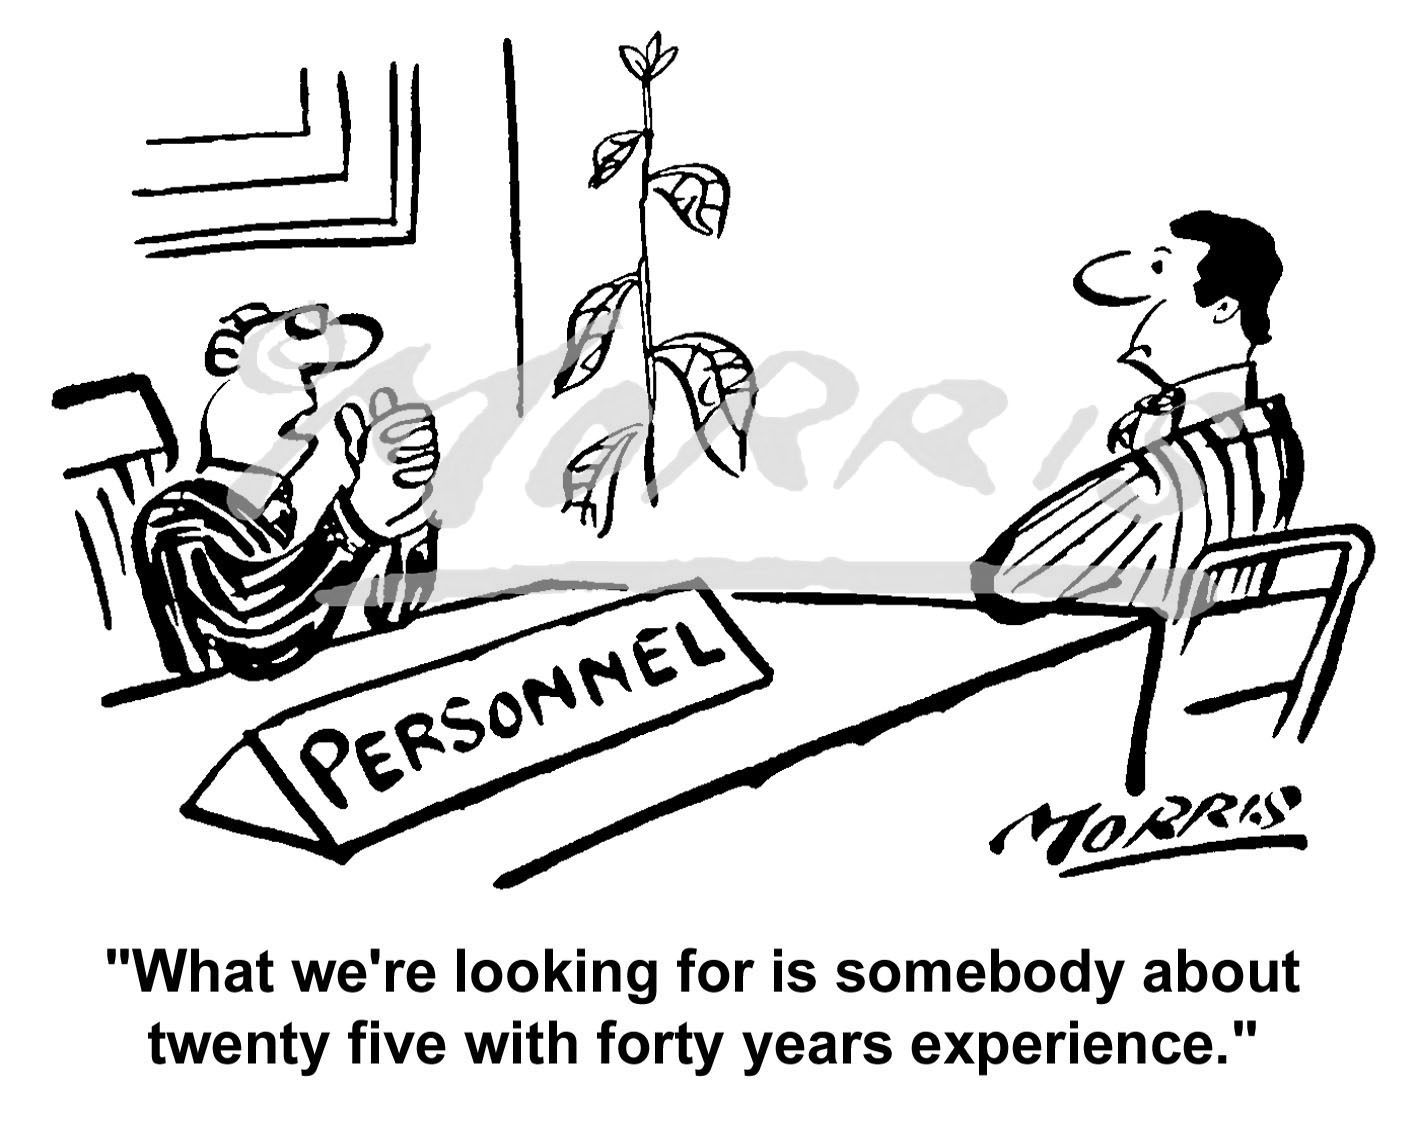 Human Resources Personnel Recruitment cartoon – Ref: 0282bw